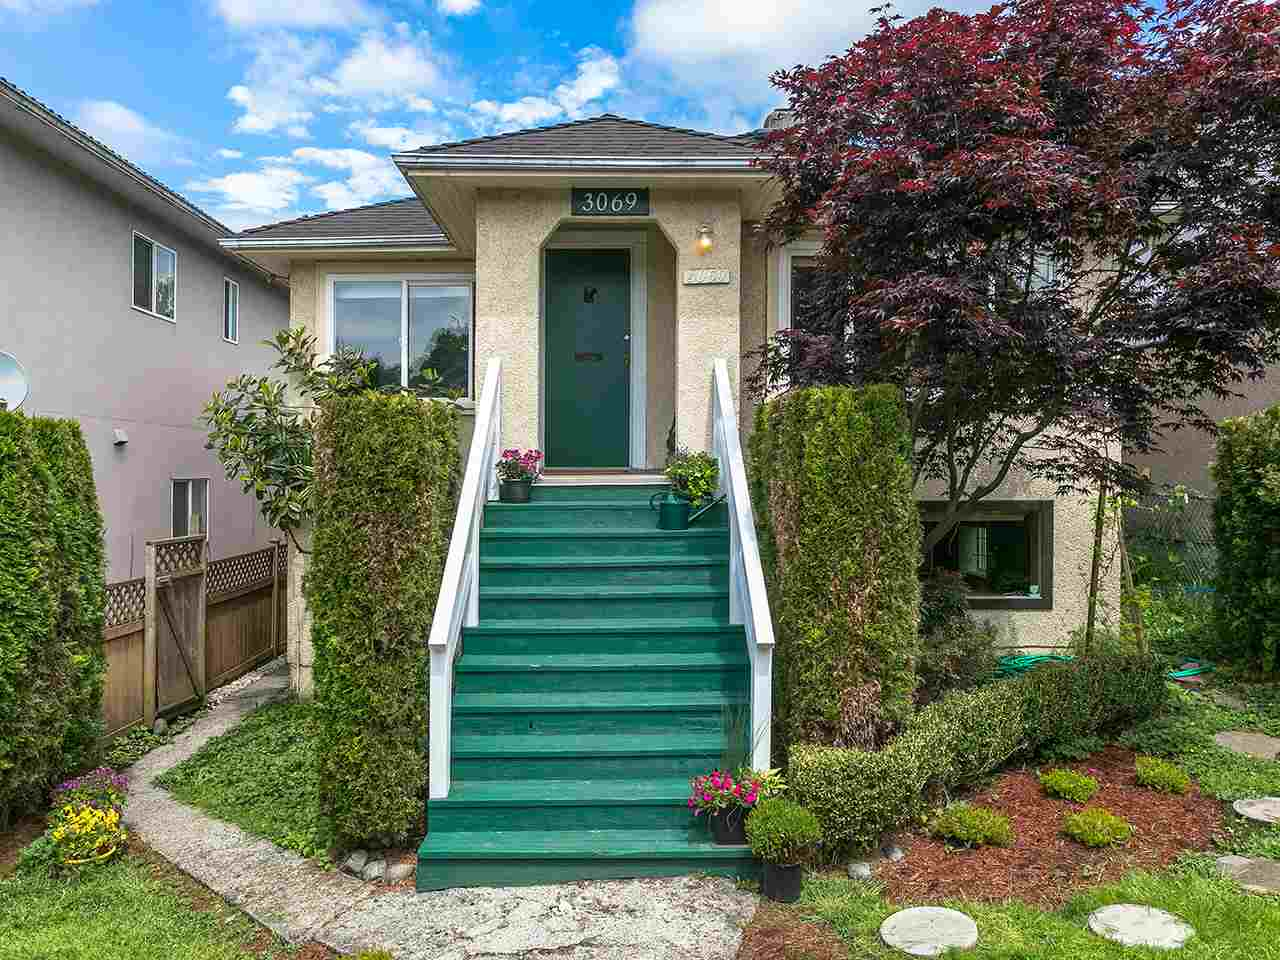 Main Photo: 3069 ADANAC Street in Vancouver: Renfrew VE House for sale (Vancouver East)  : MLS® # R2173786